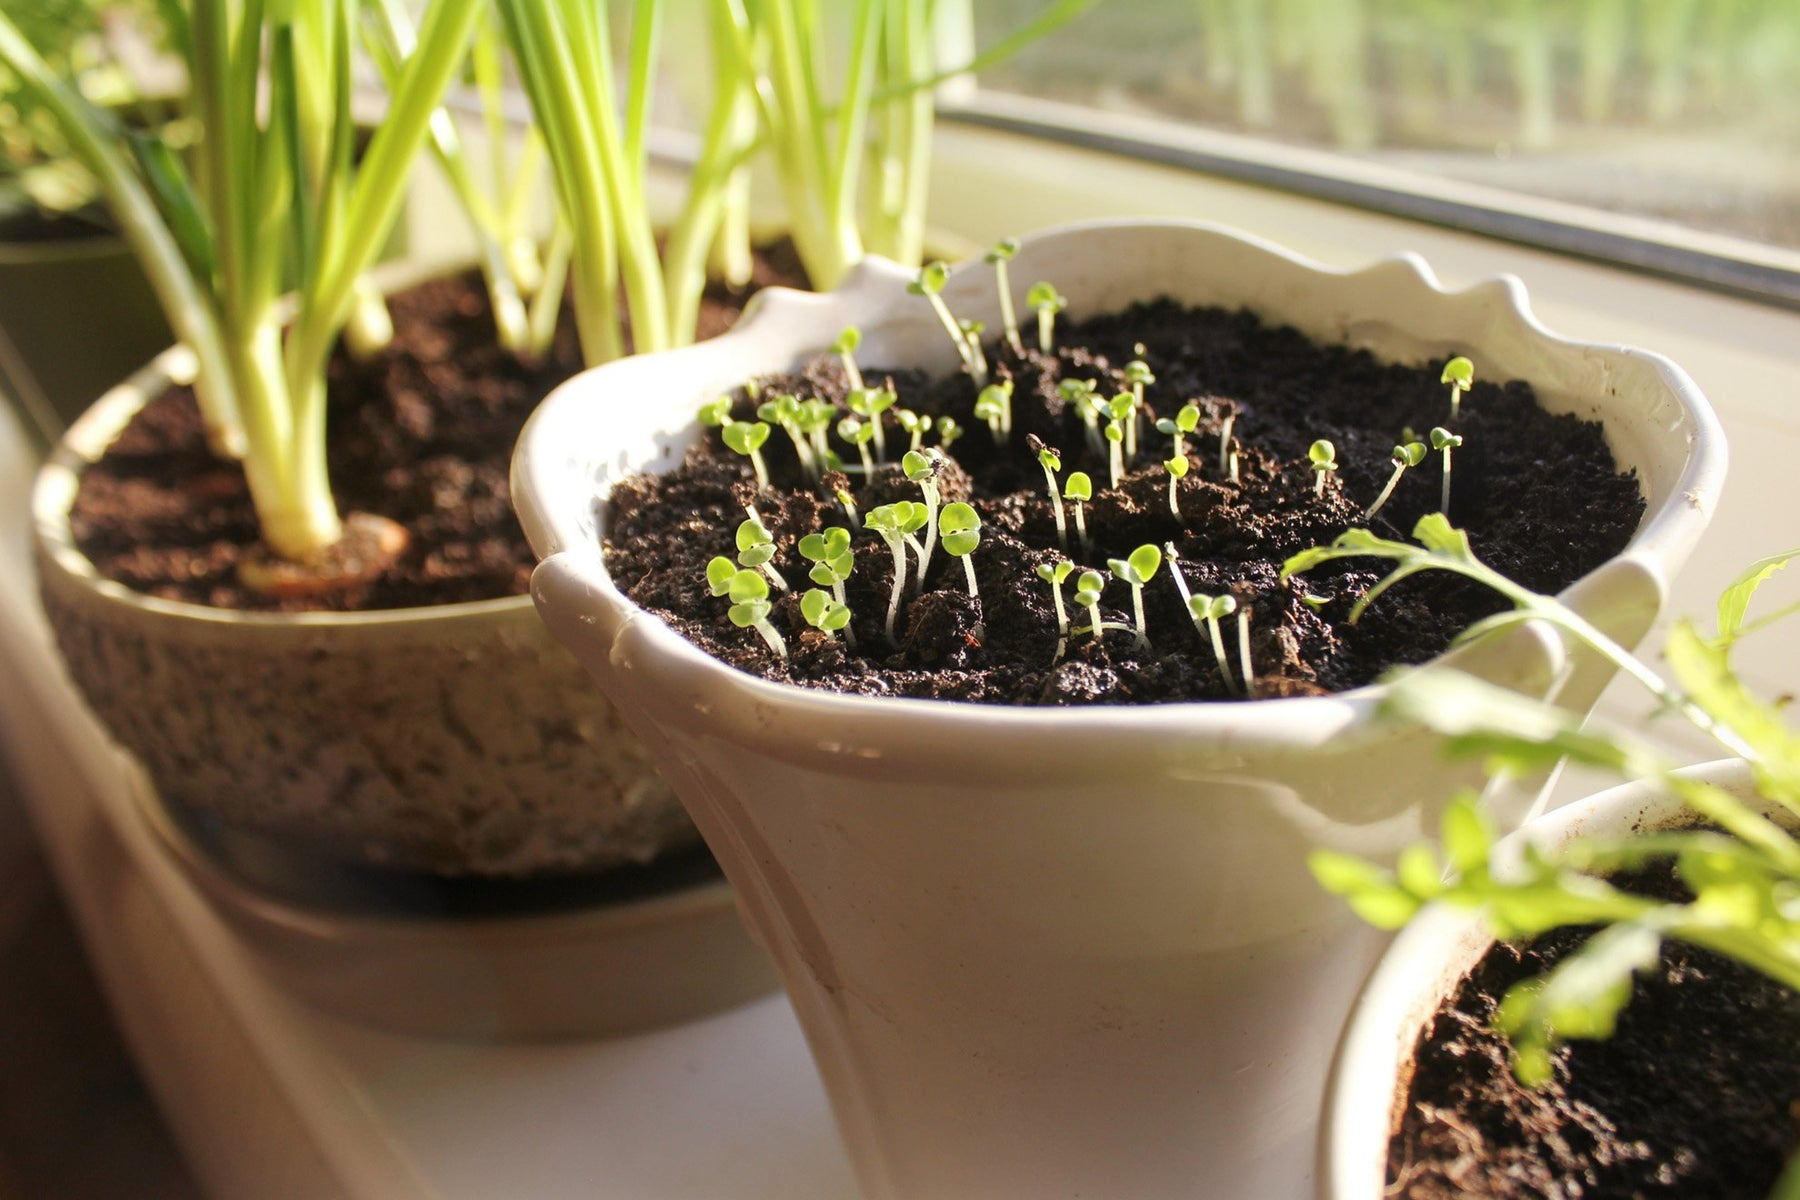 Quarantine vBlog : Regrowing food from your own kitchen? - Nurserylive